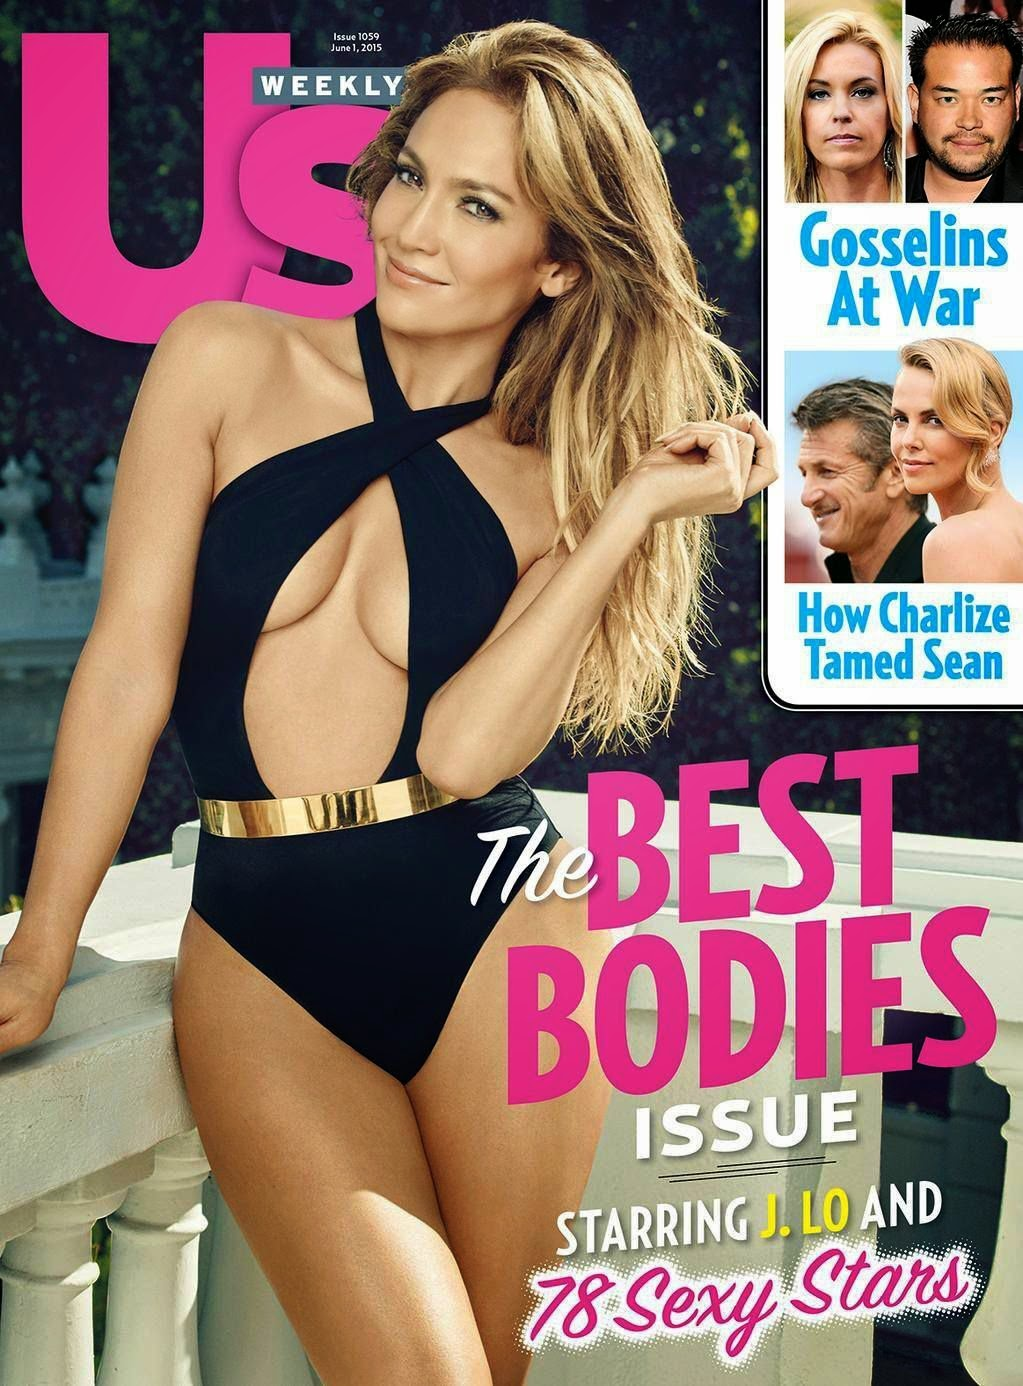 Actress @ Jennifer Lopez - Weekly US, June 2015